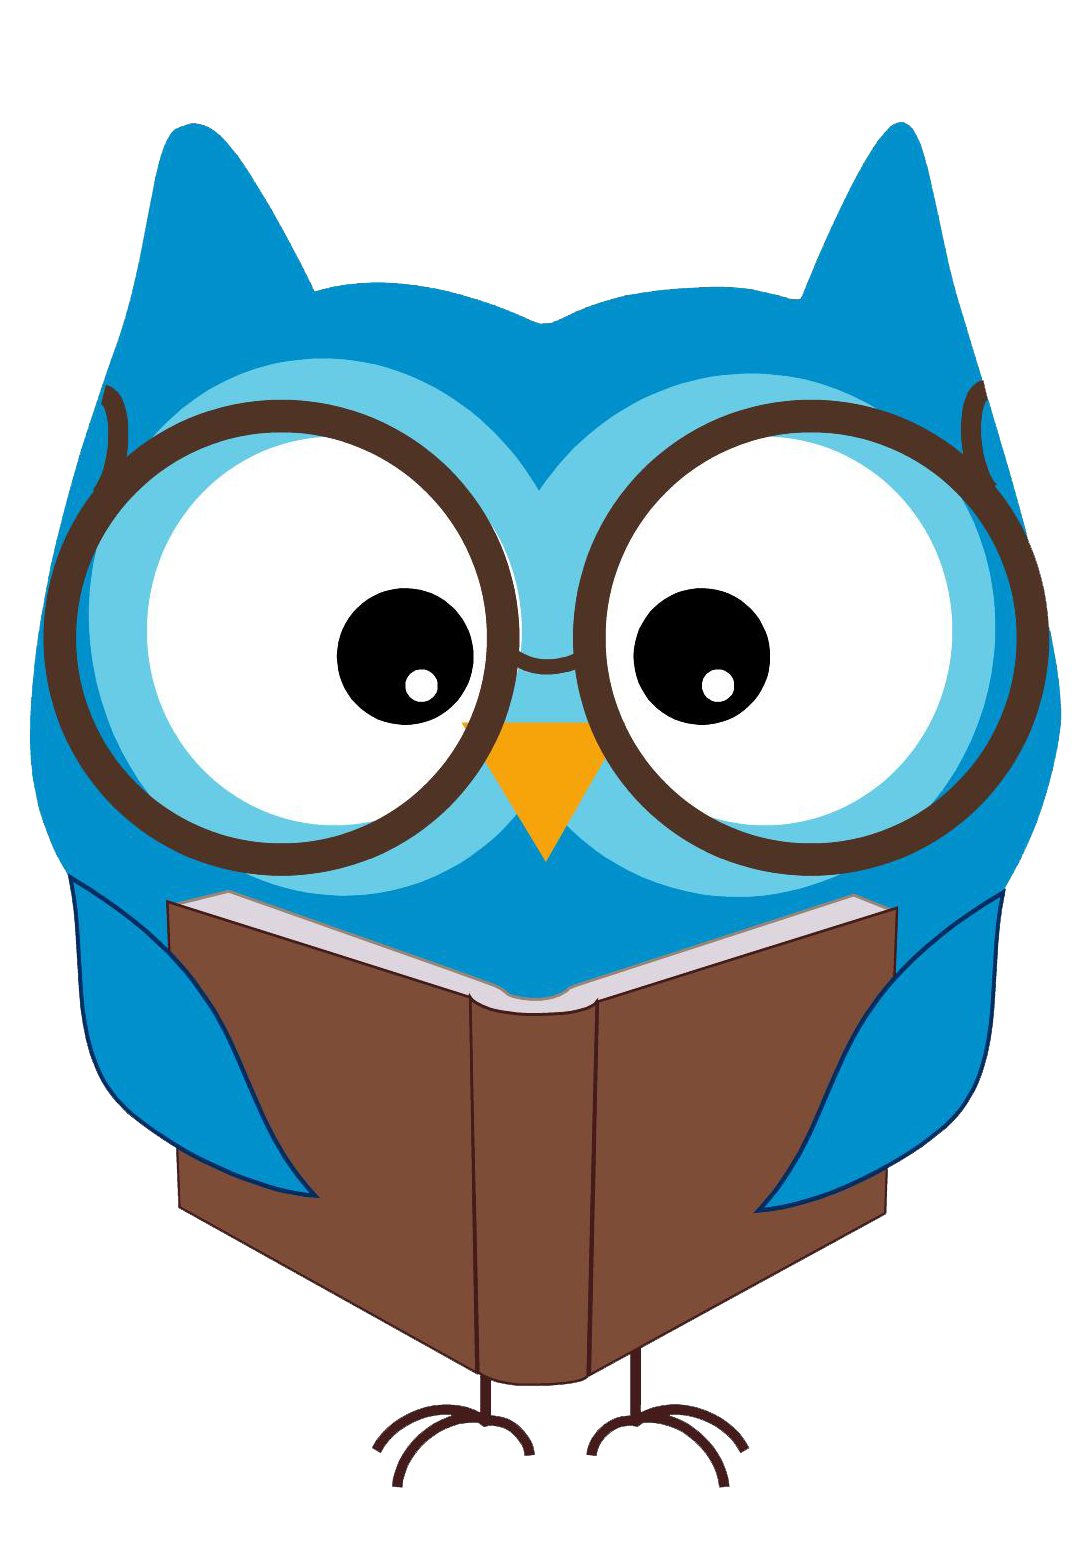 Simple animal at getdrawings. Owls clipart academic